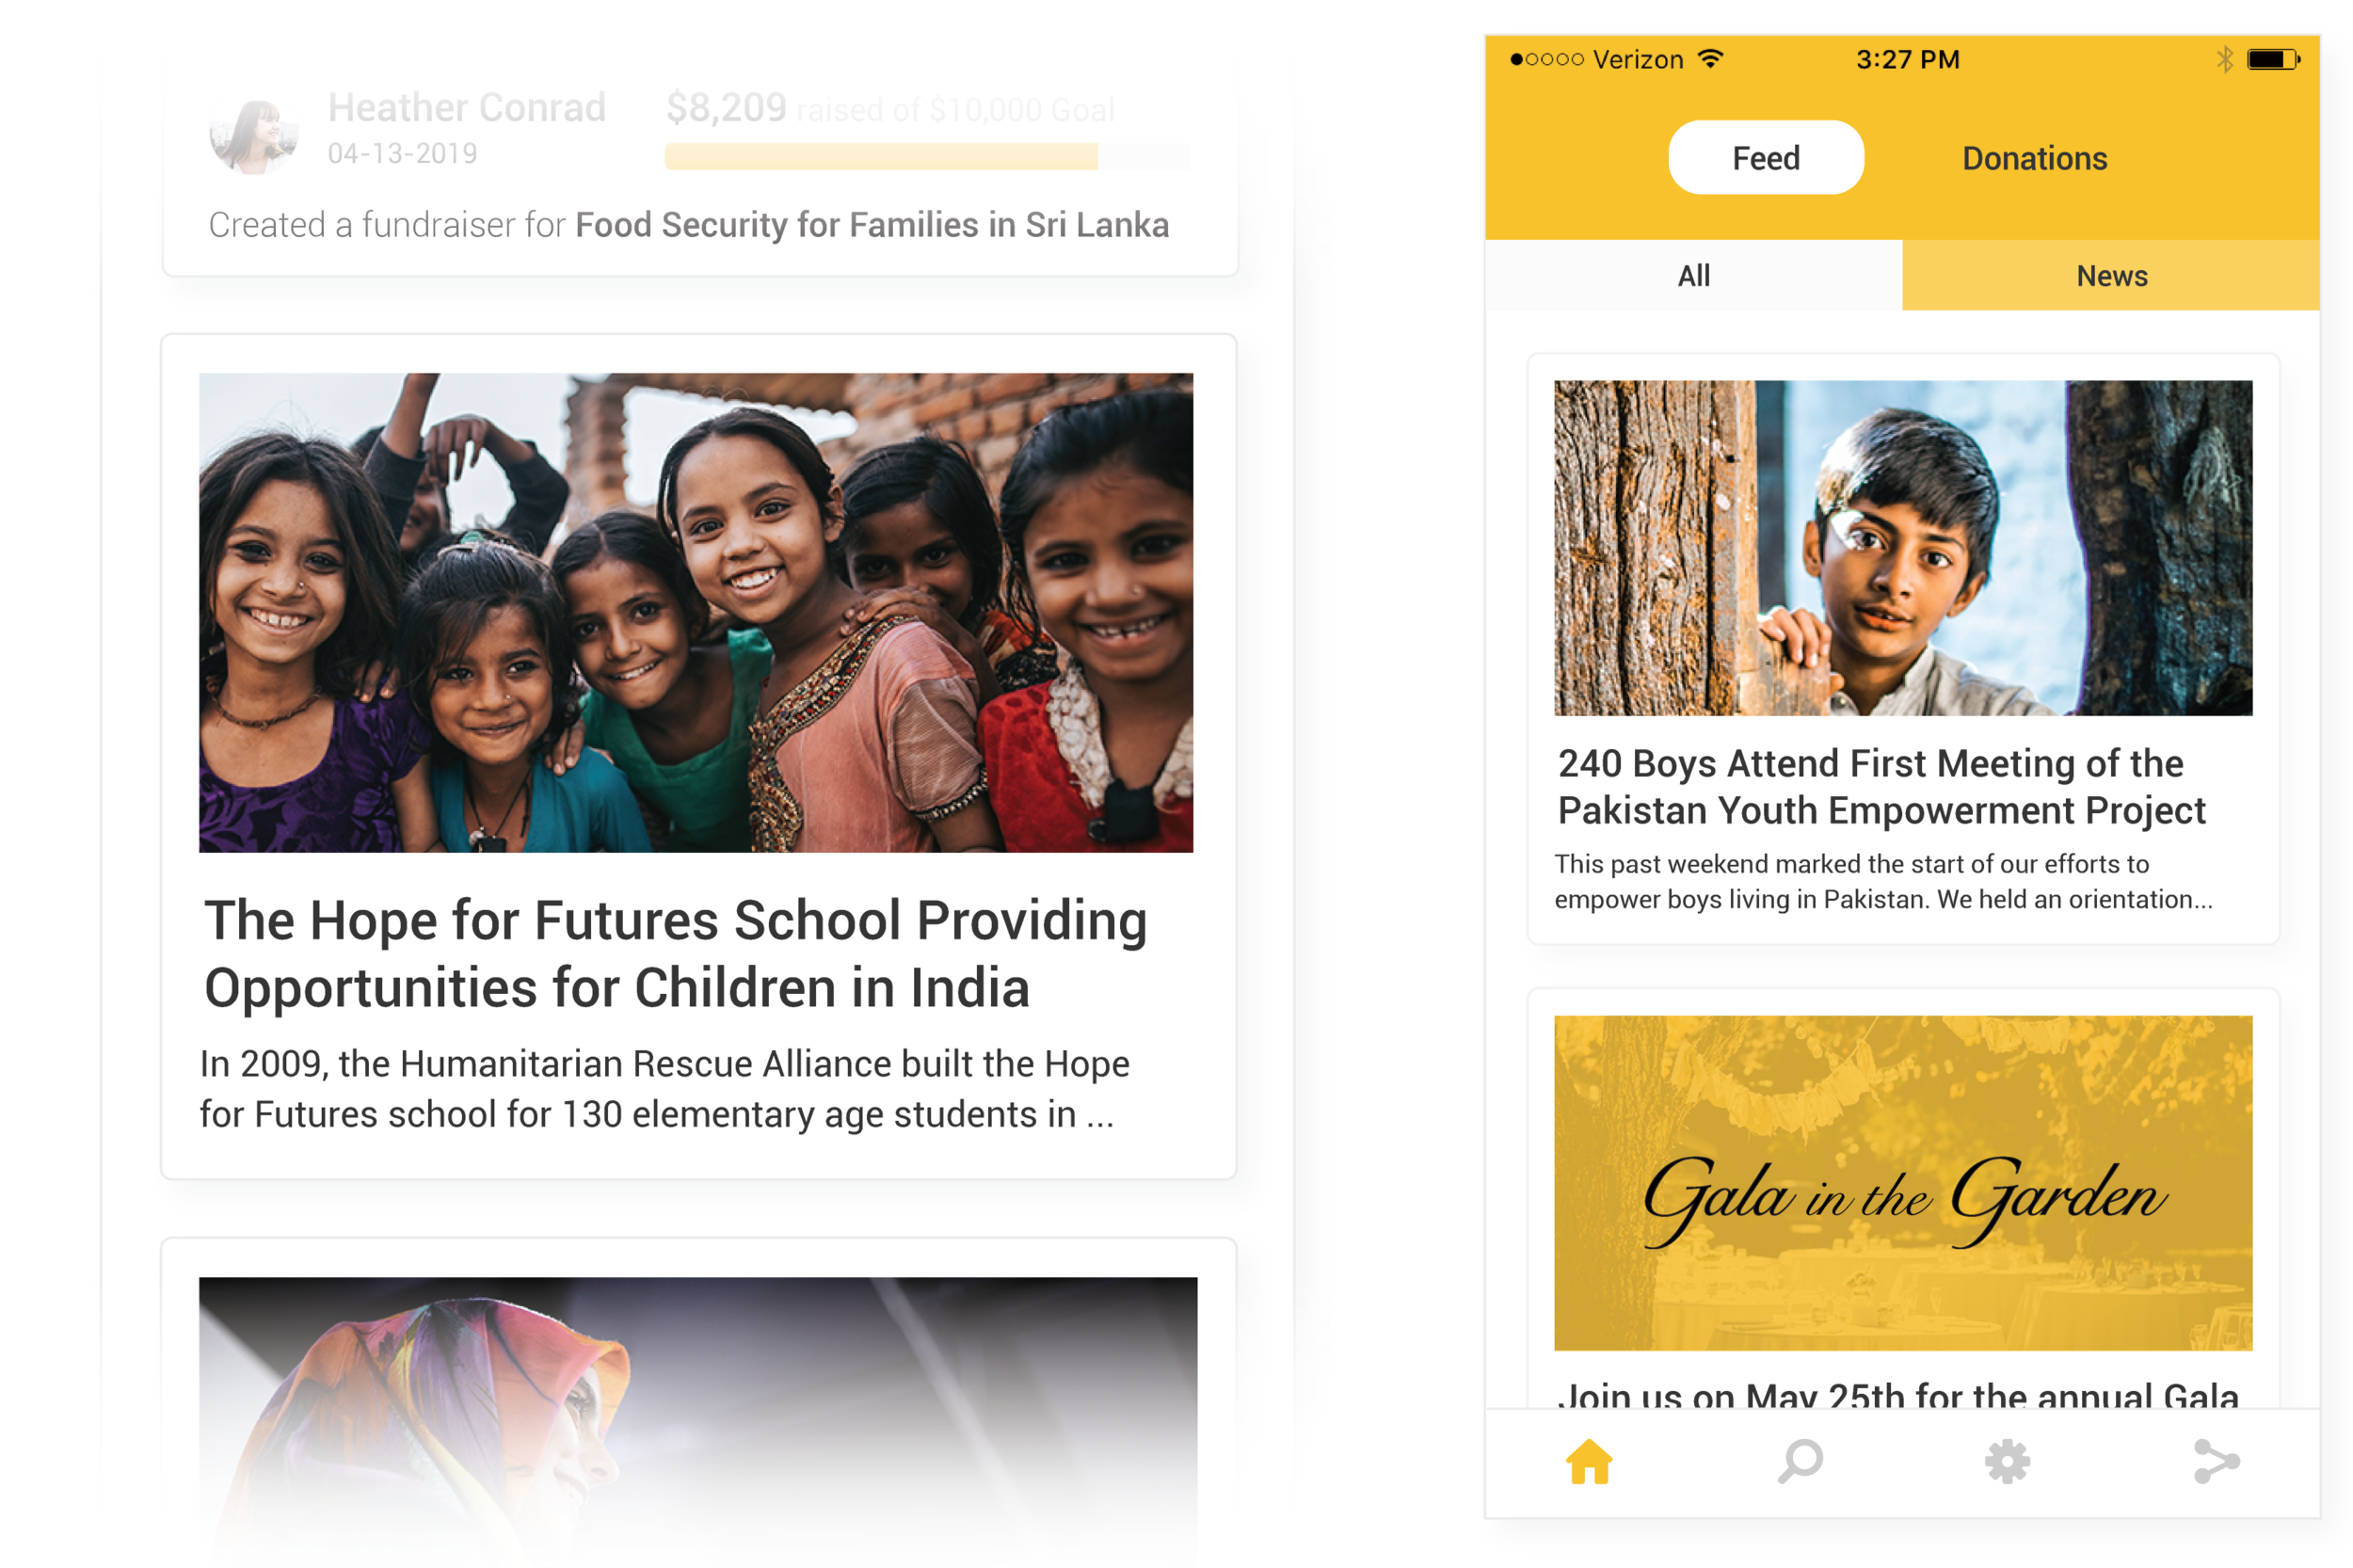 News worthy content - Keep supporters in the know with engaging content in the news feed of your app. Share events, campaign updates, impact stories and more.